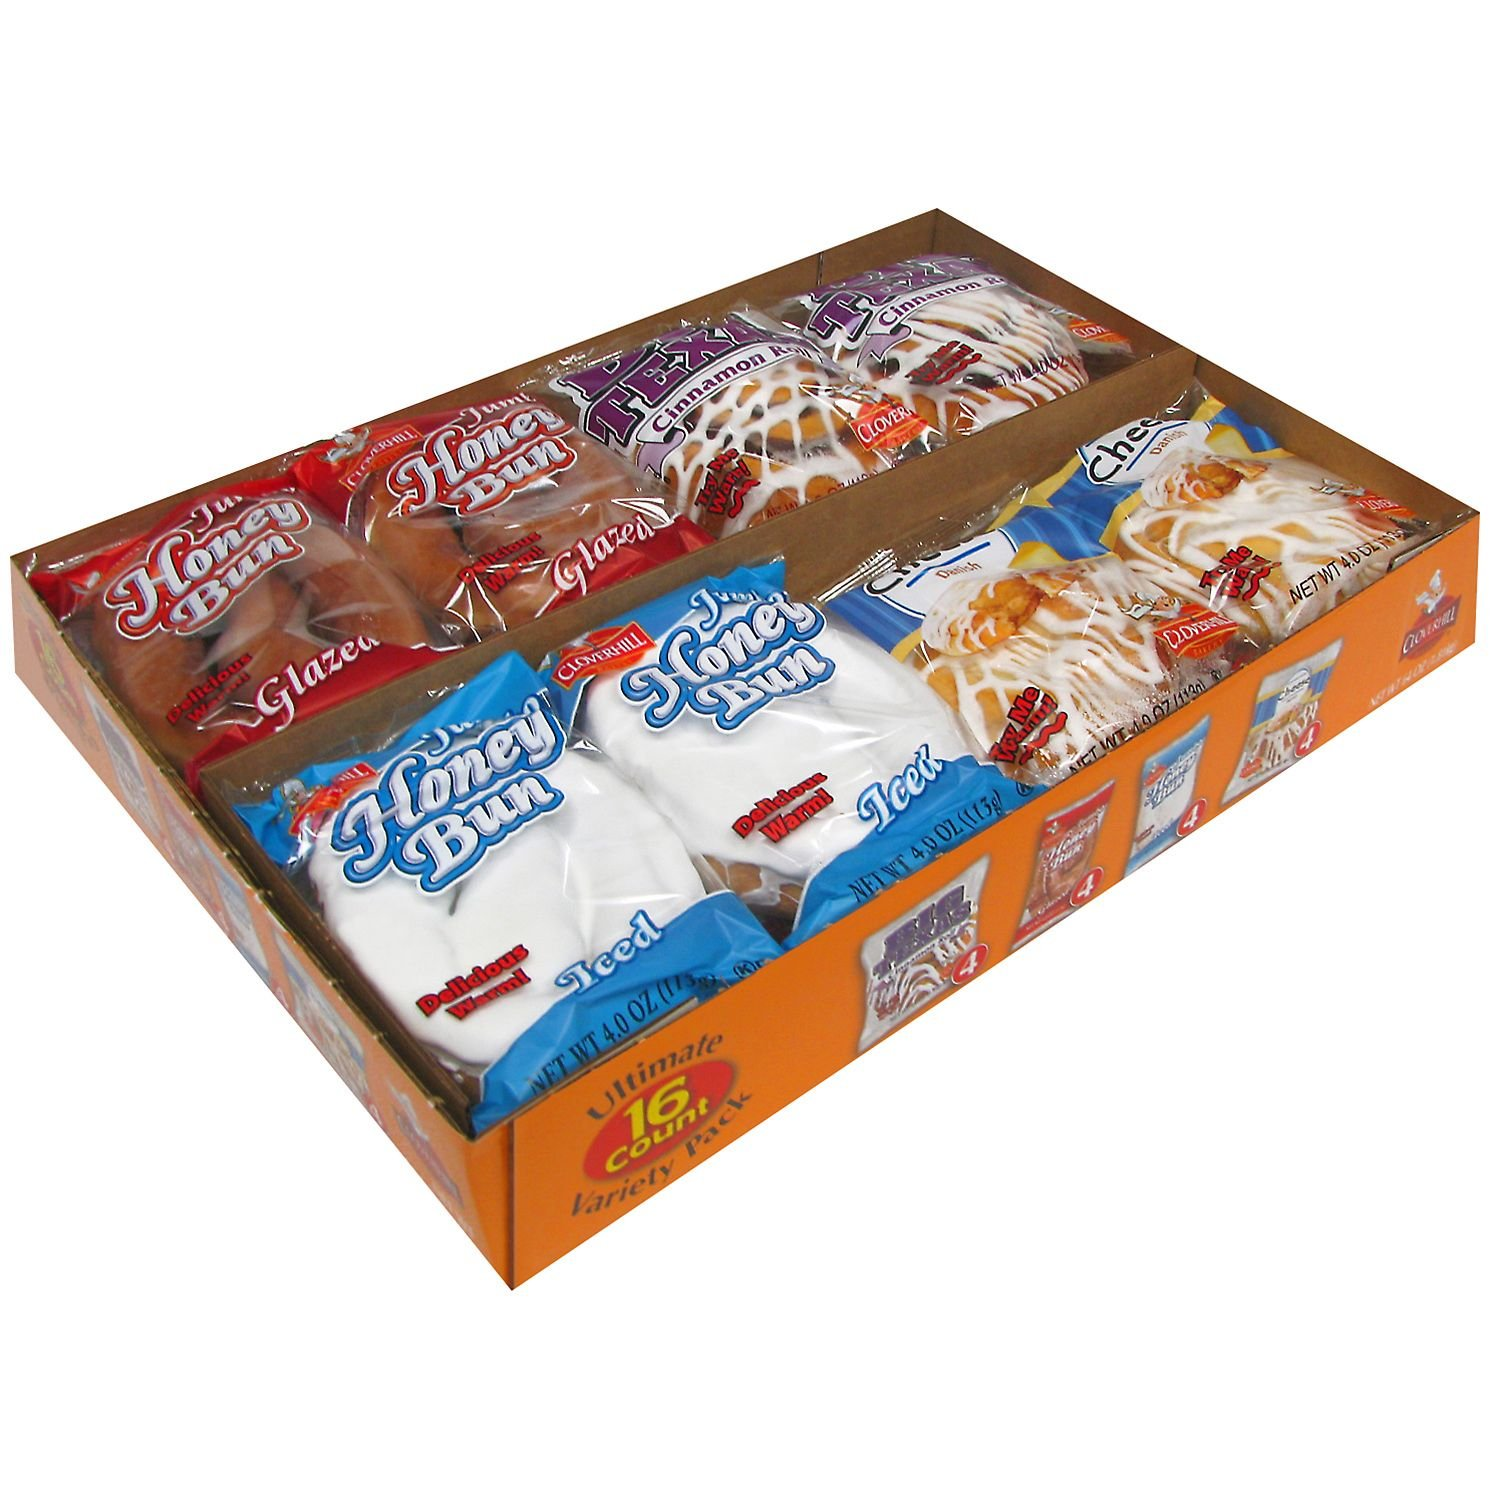 Cloverhill Bakery Ultimate Danish and Honey Bun Variety Pack